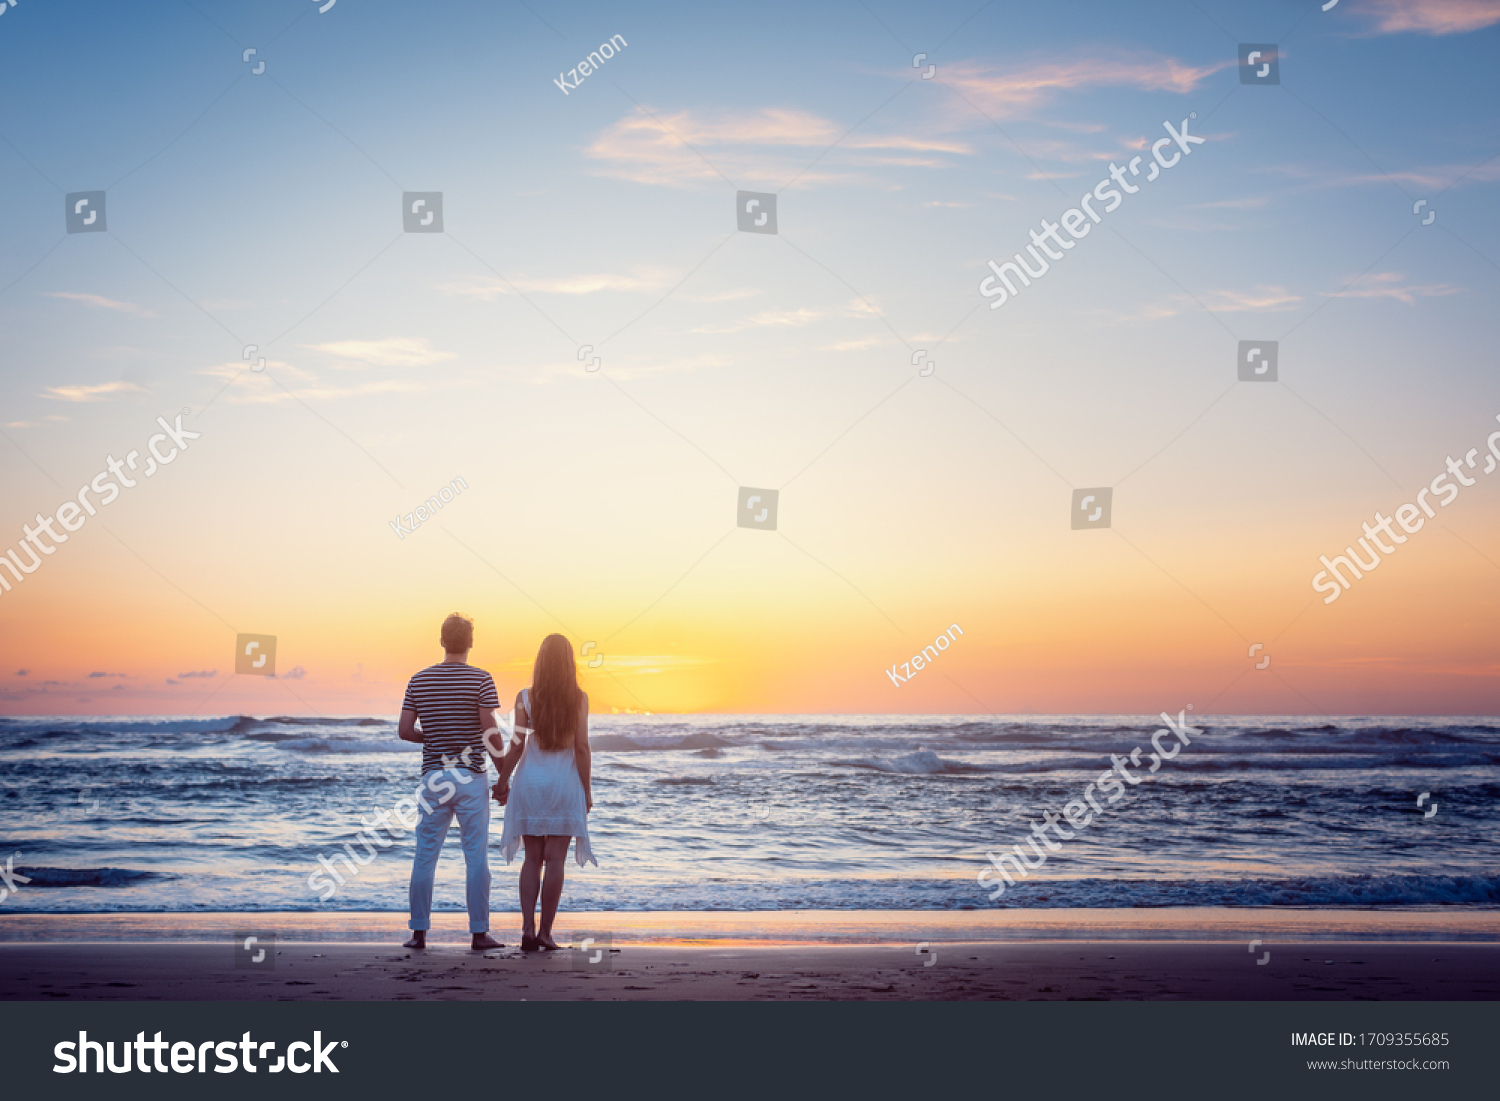 Romantic couple holding hands in their vacation standing on a beach by the sea #1709355685